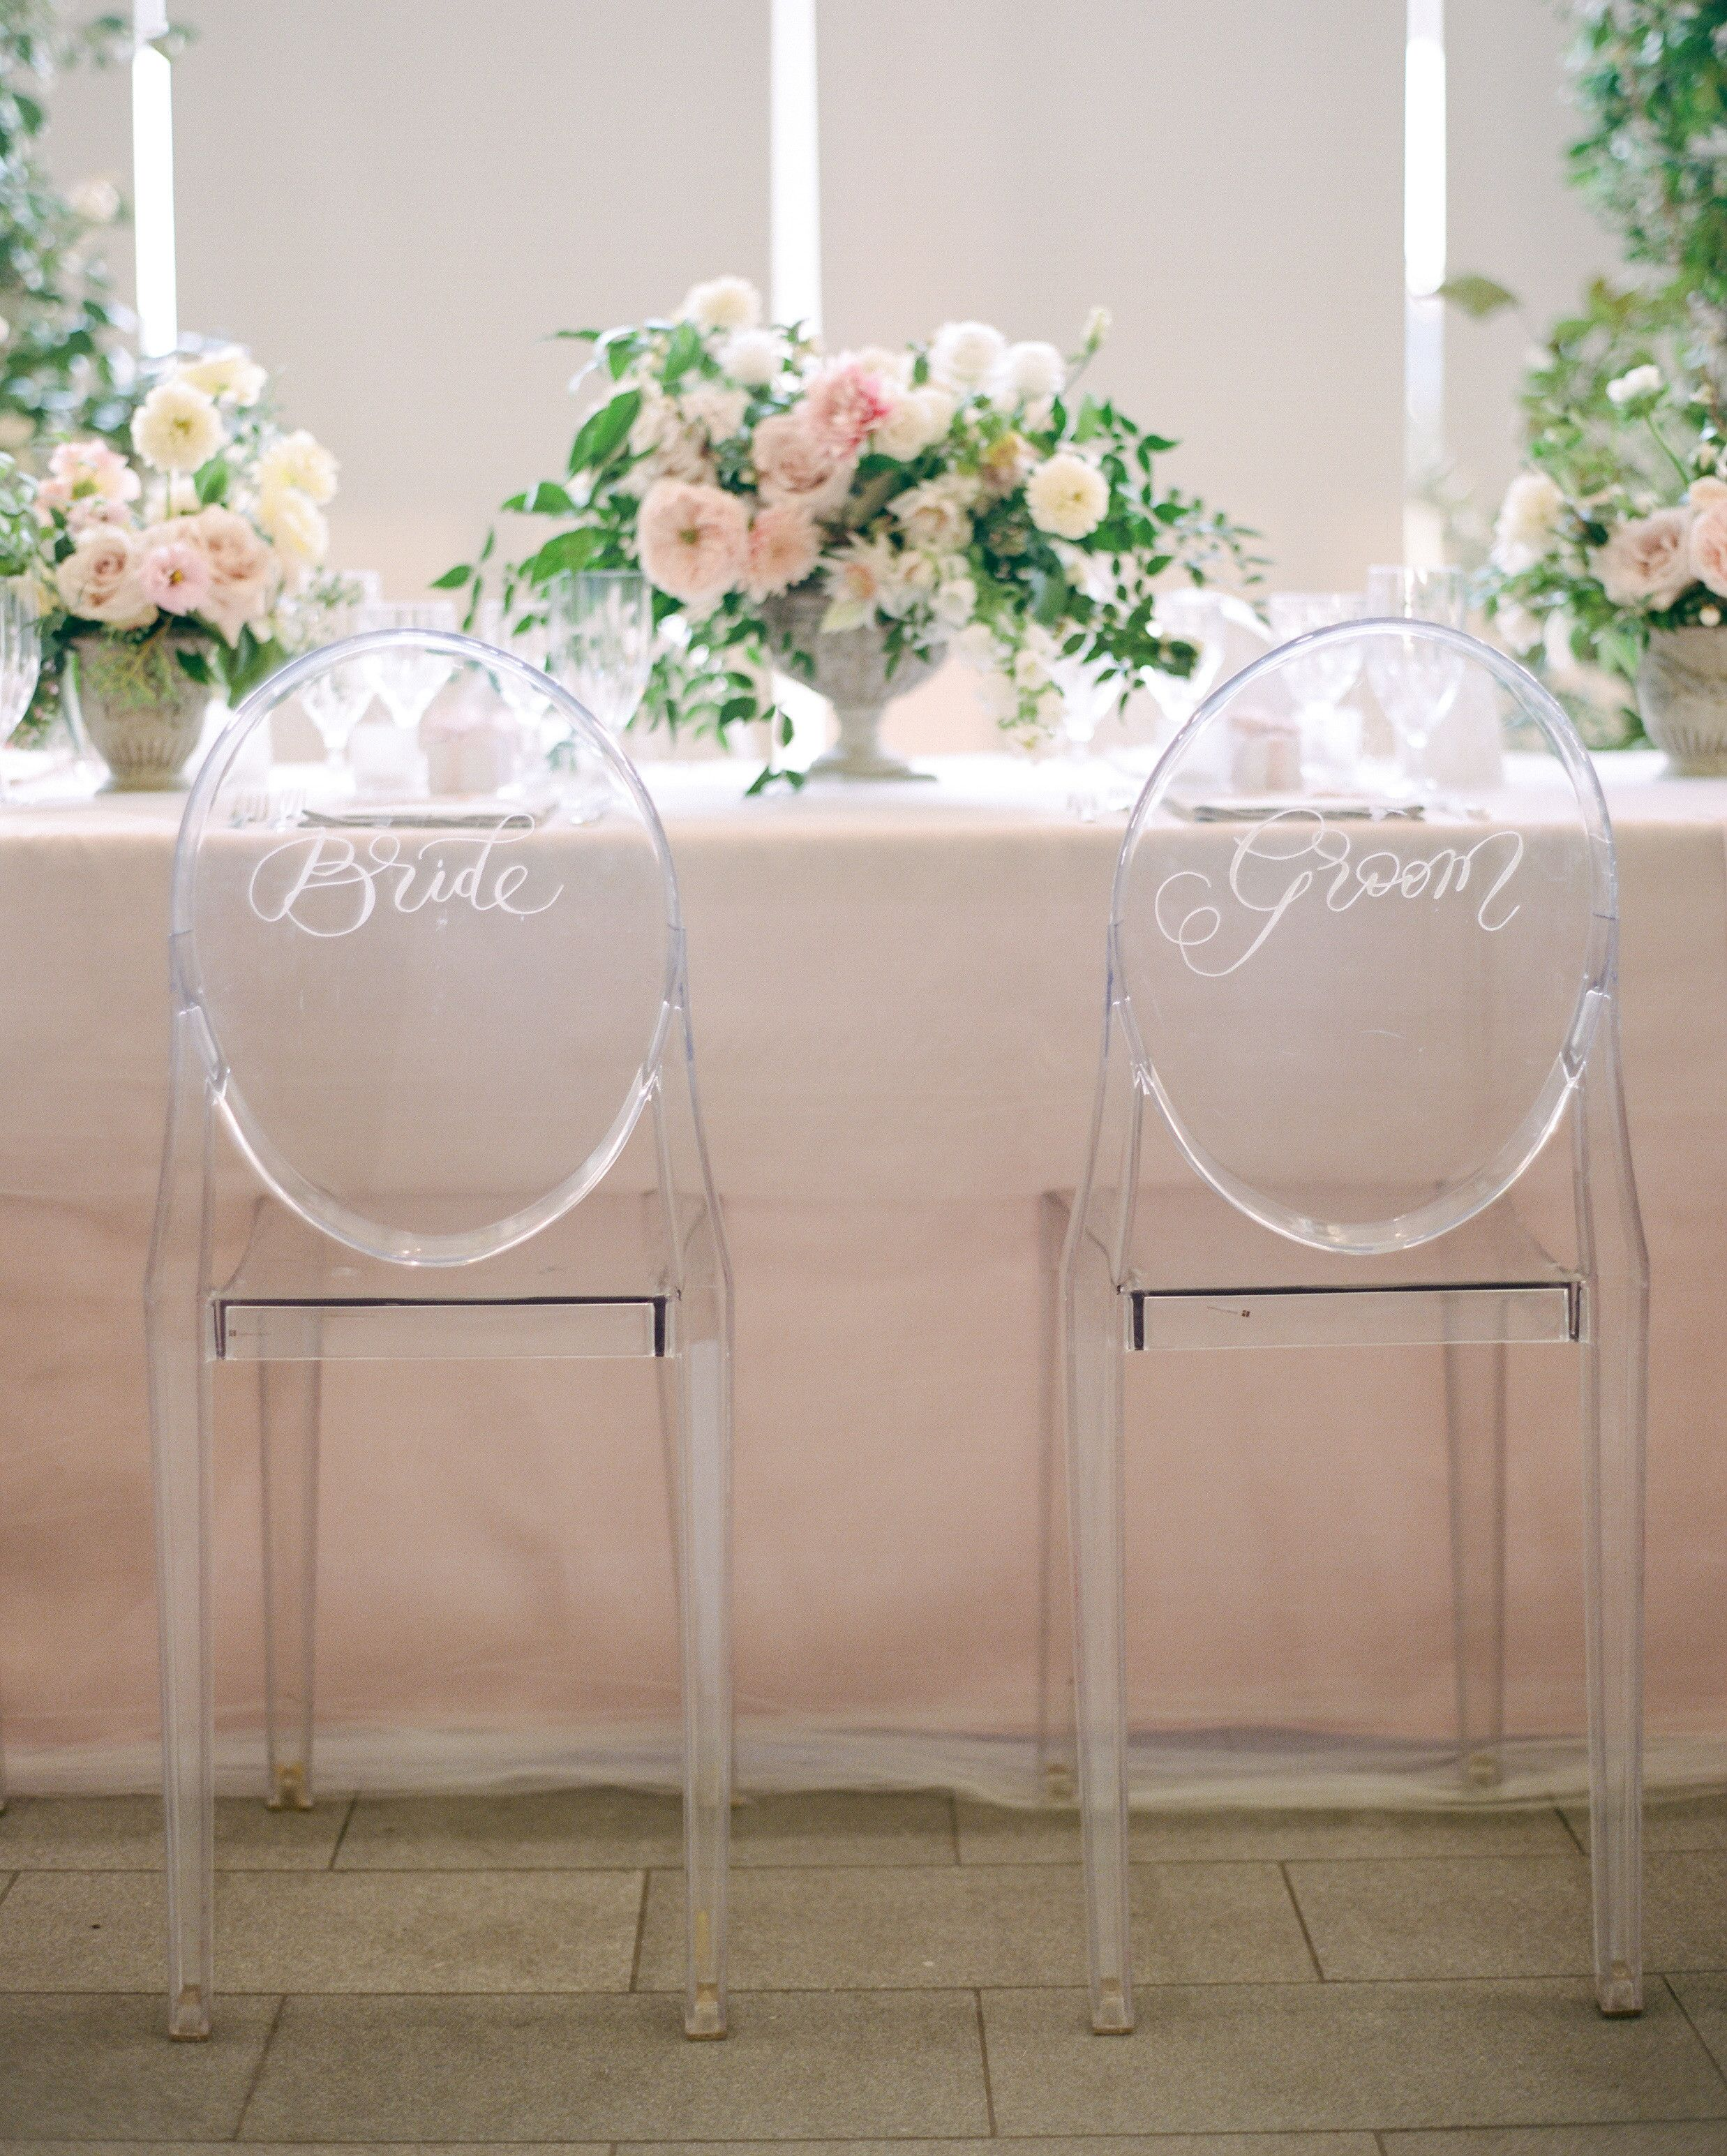 A Romantic Garden Wedding In The Heart Of Houston Texas Wedding Chairs Romantic Garden Wedding Wedding Rental Chairs